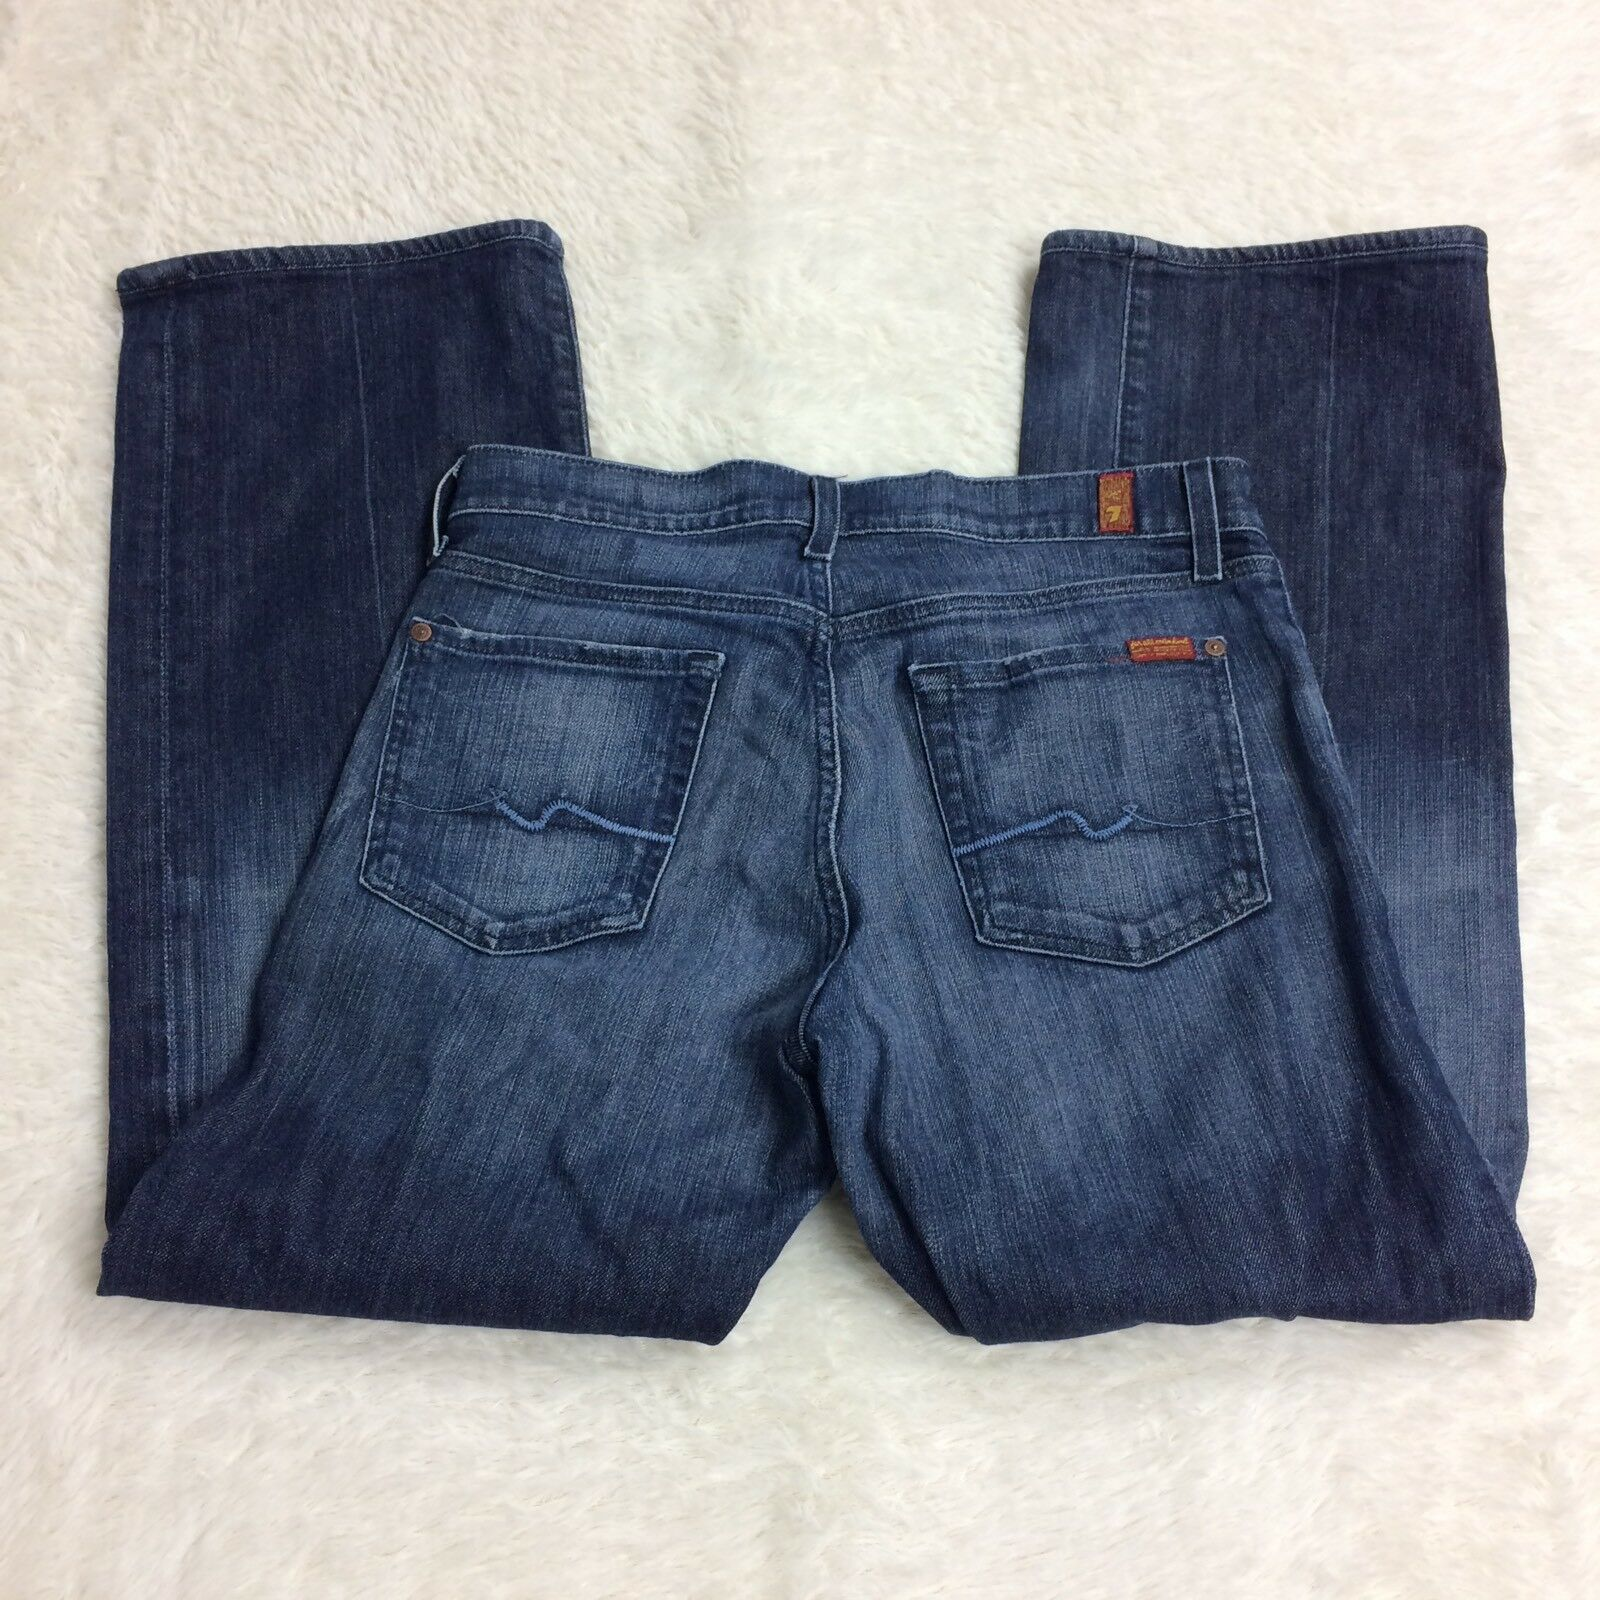 7 For All Mankind Mens Relaxed Bootcut Dark Wash Button Fly Jeans Size 31x29